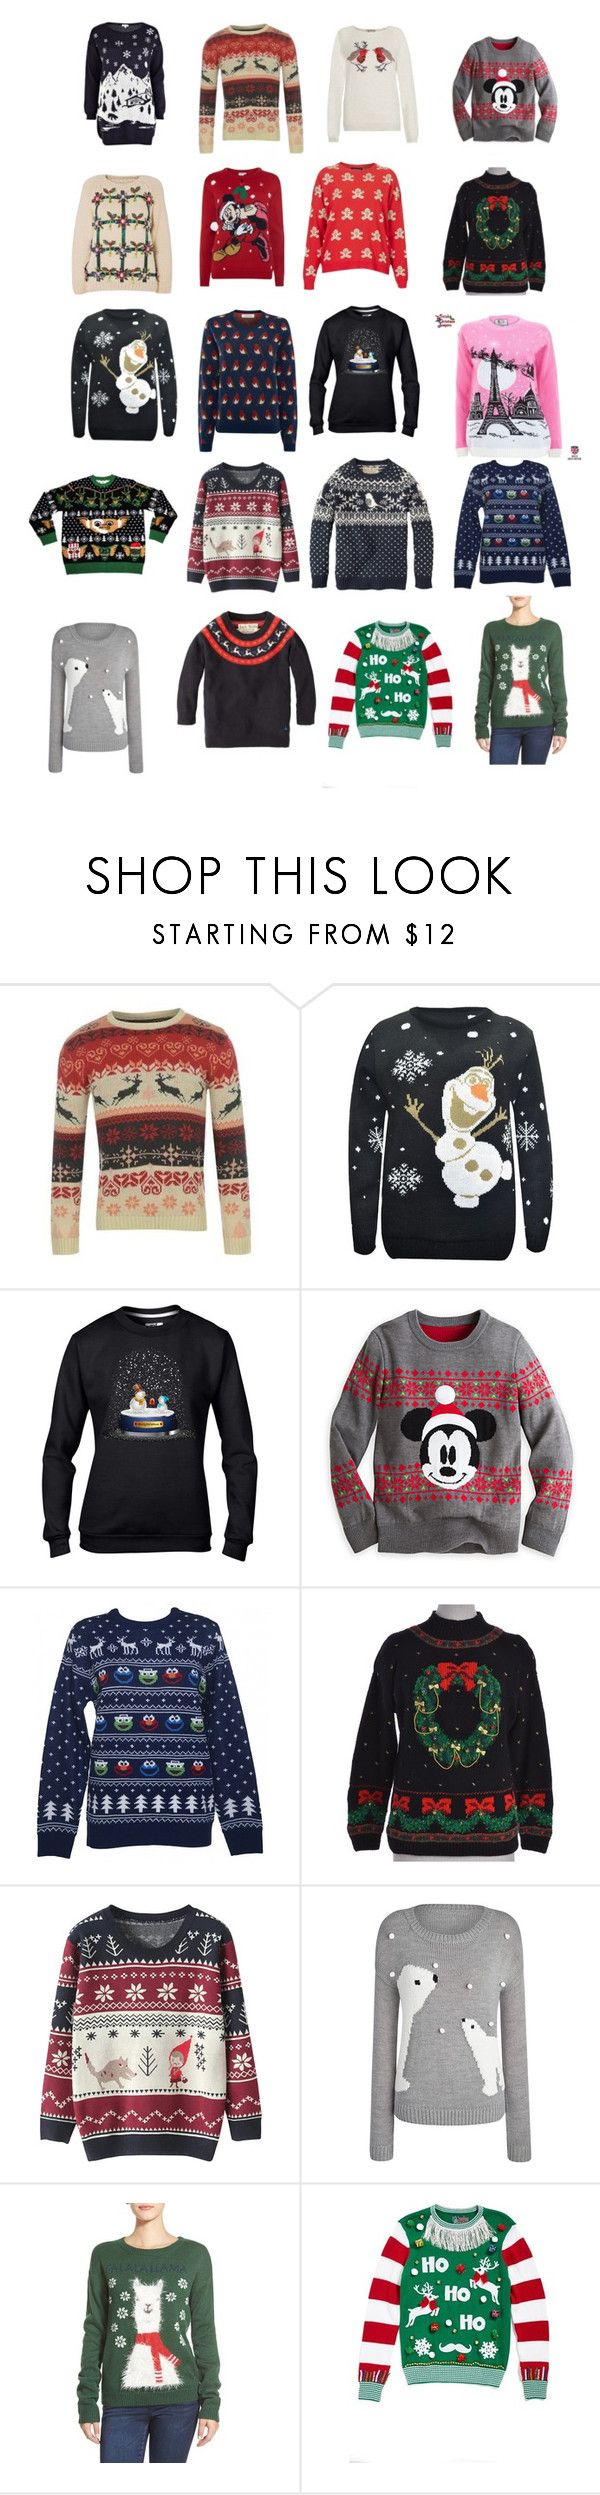 """""""Tis the season for a tacky sweater"""" by waspforlife ❤ liked on Polyvore featuring River Island, Disney, Sesame Street, Jack Wills, BP. and Ugly Christmas Sweater"""